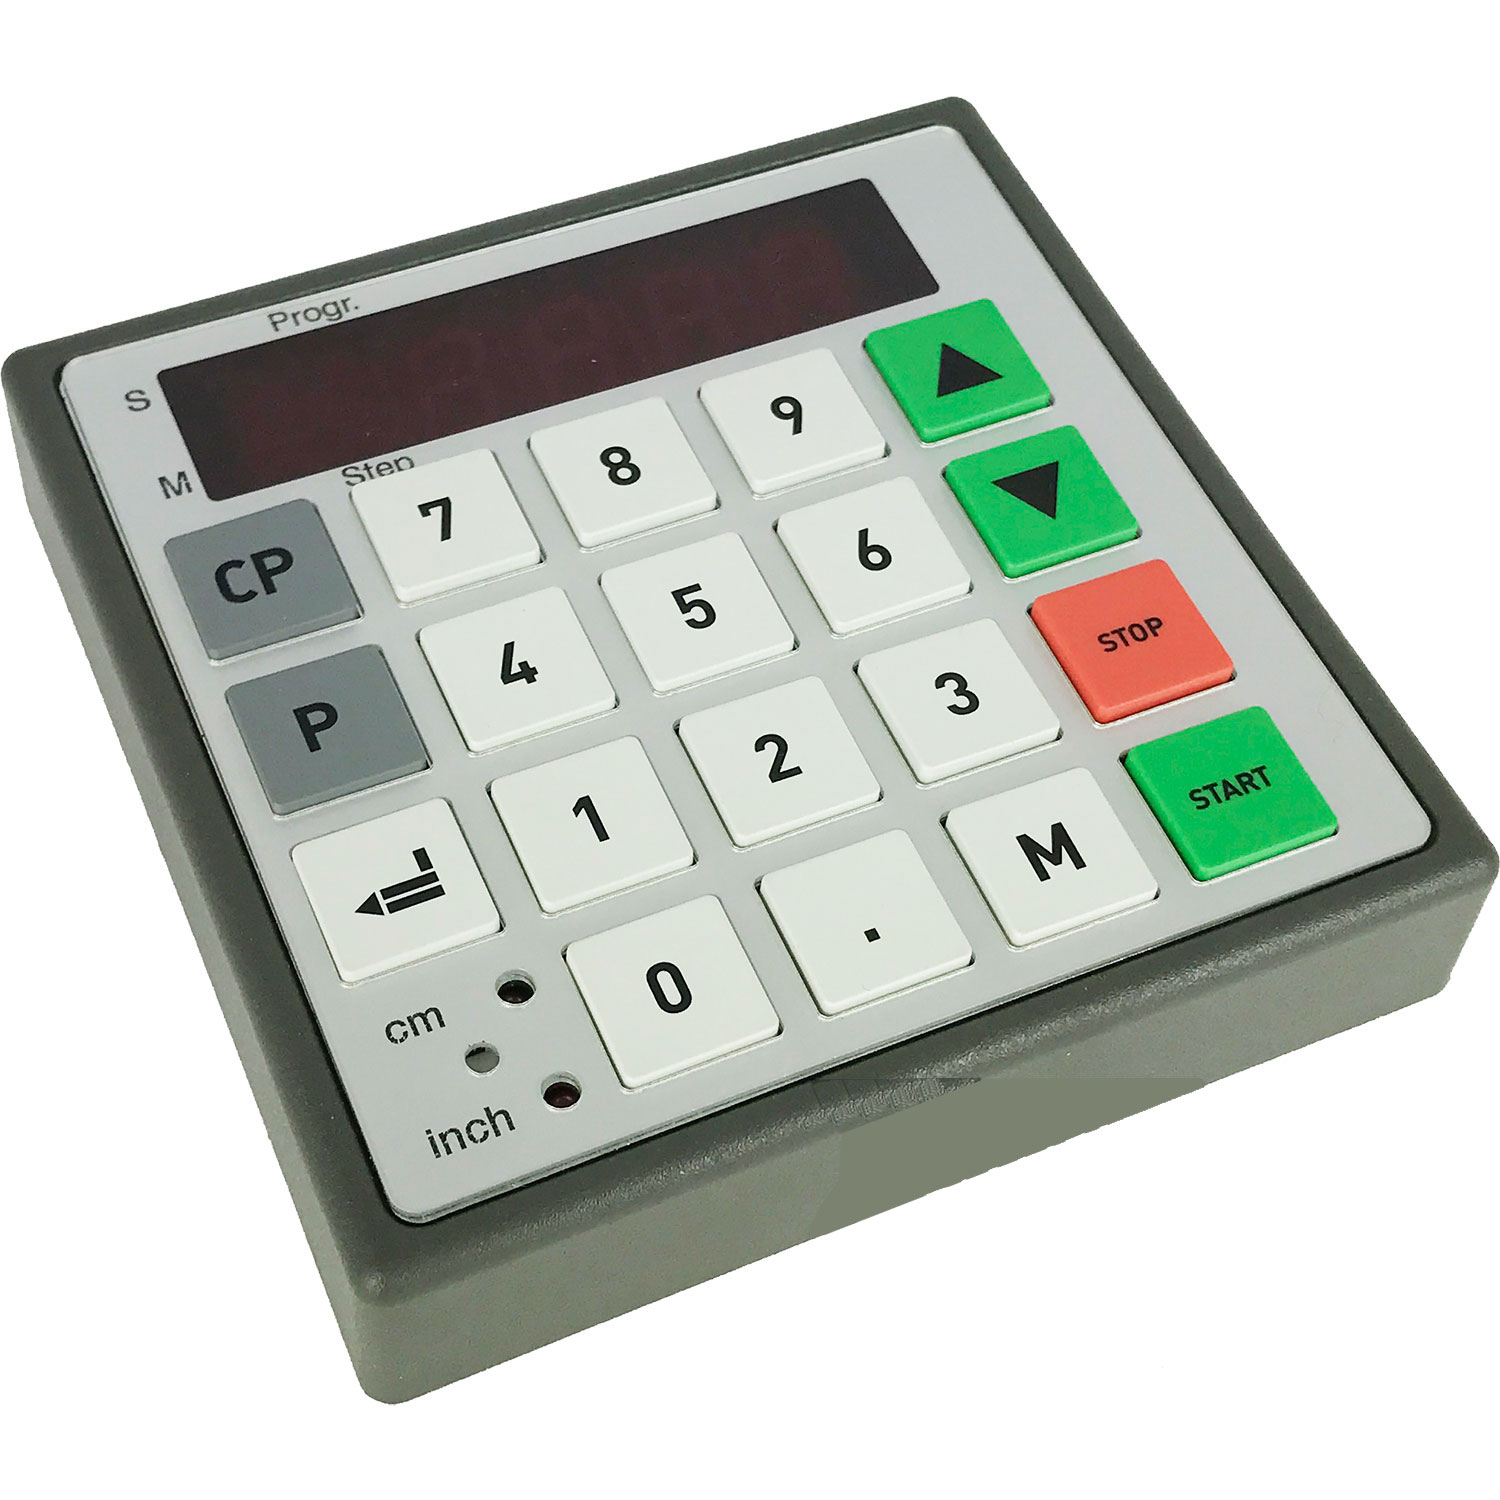 Control Keypad For 99-Program IDEAL Guillotines